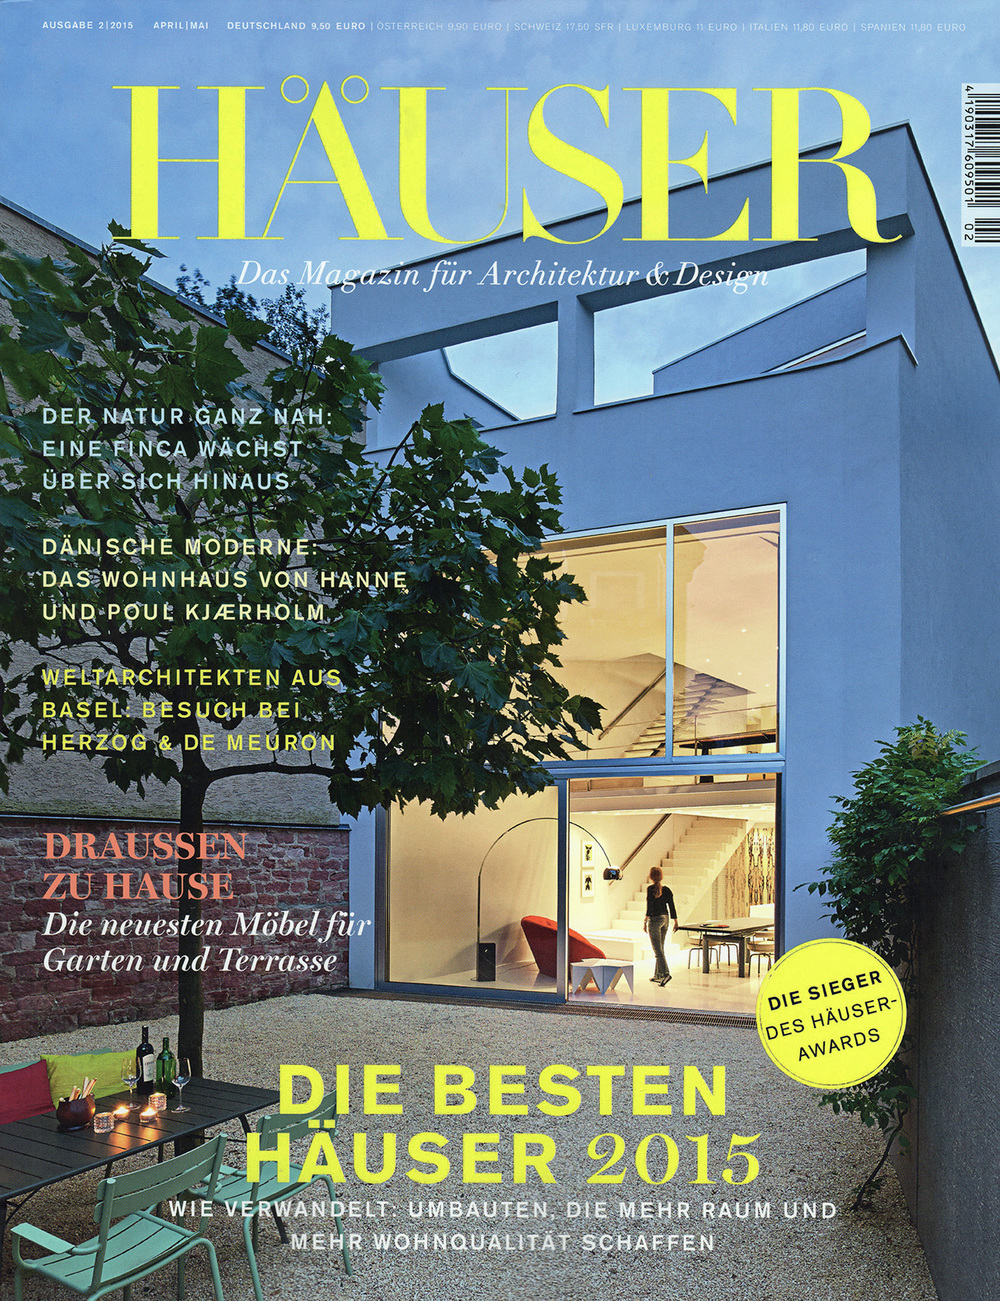 Rs29 featured in häuser magazin the best houses 2015 1st prize recipient